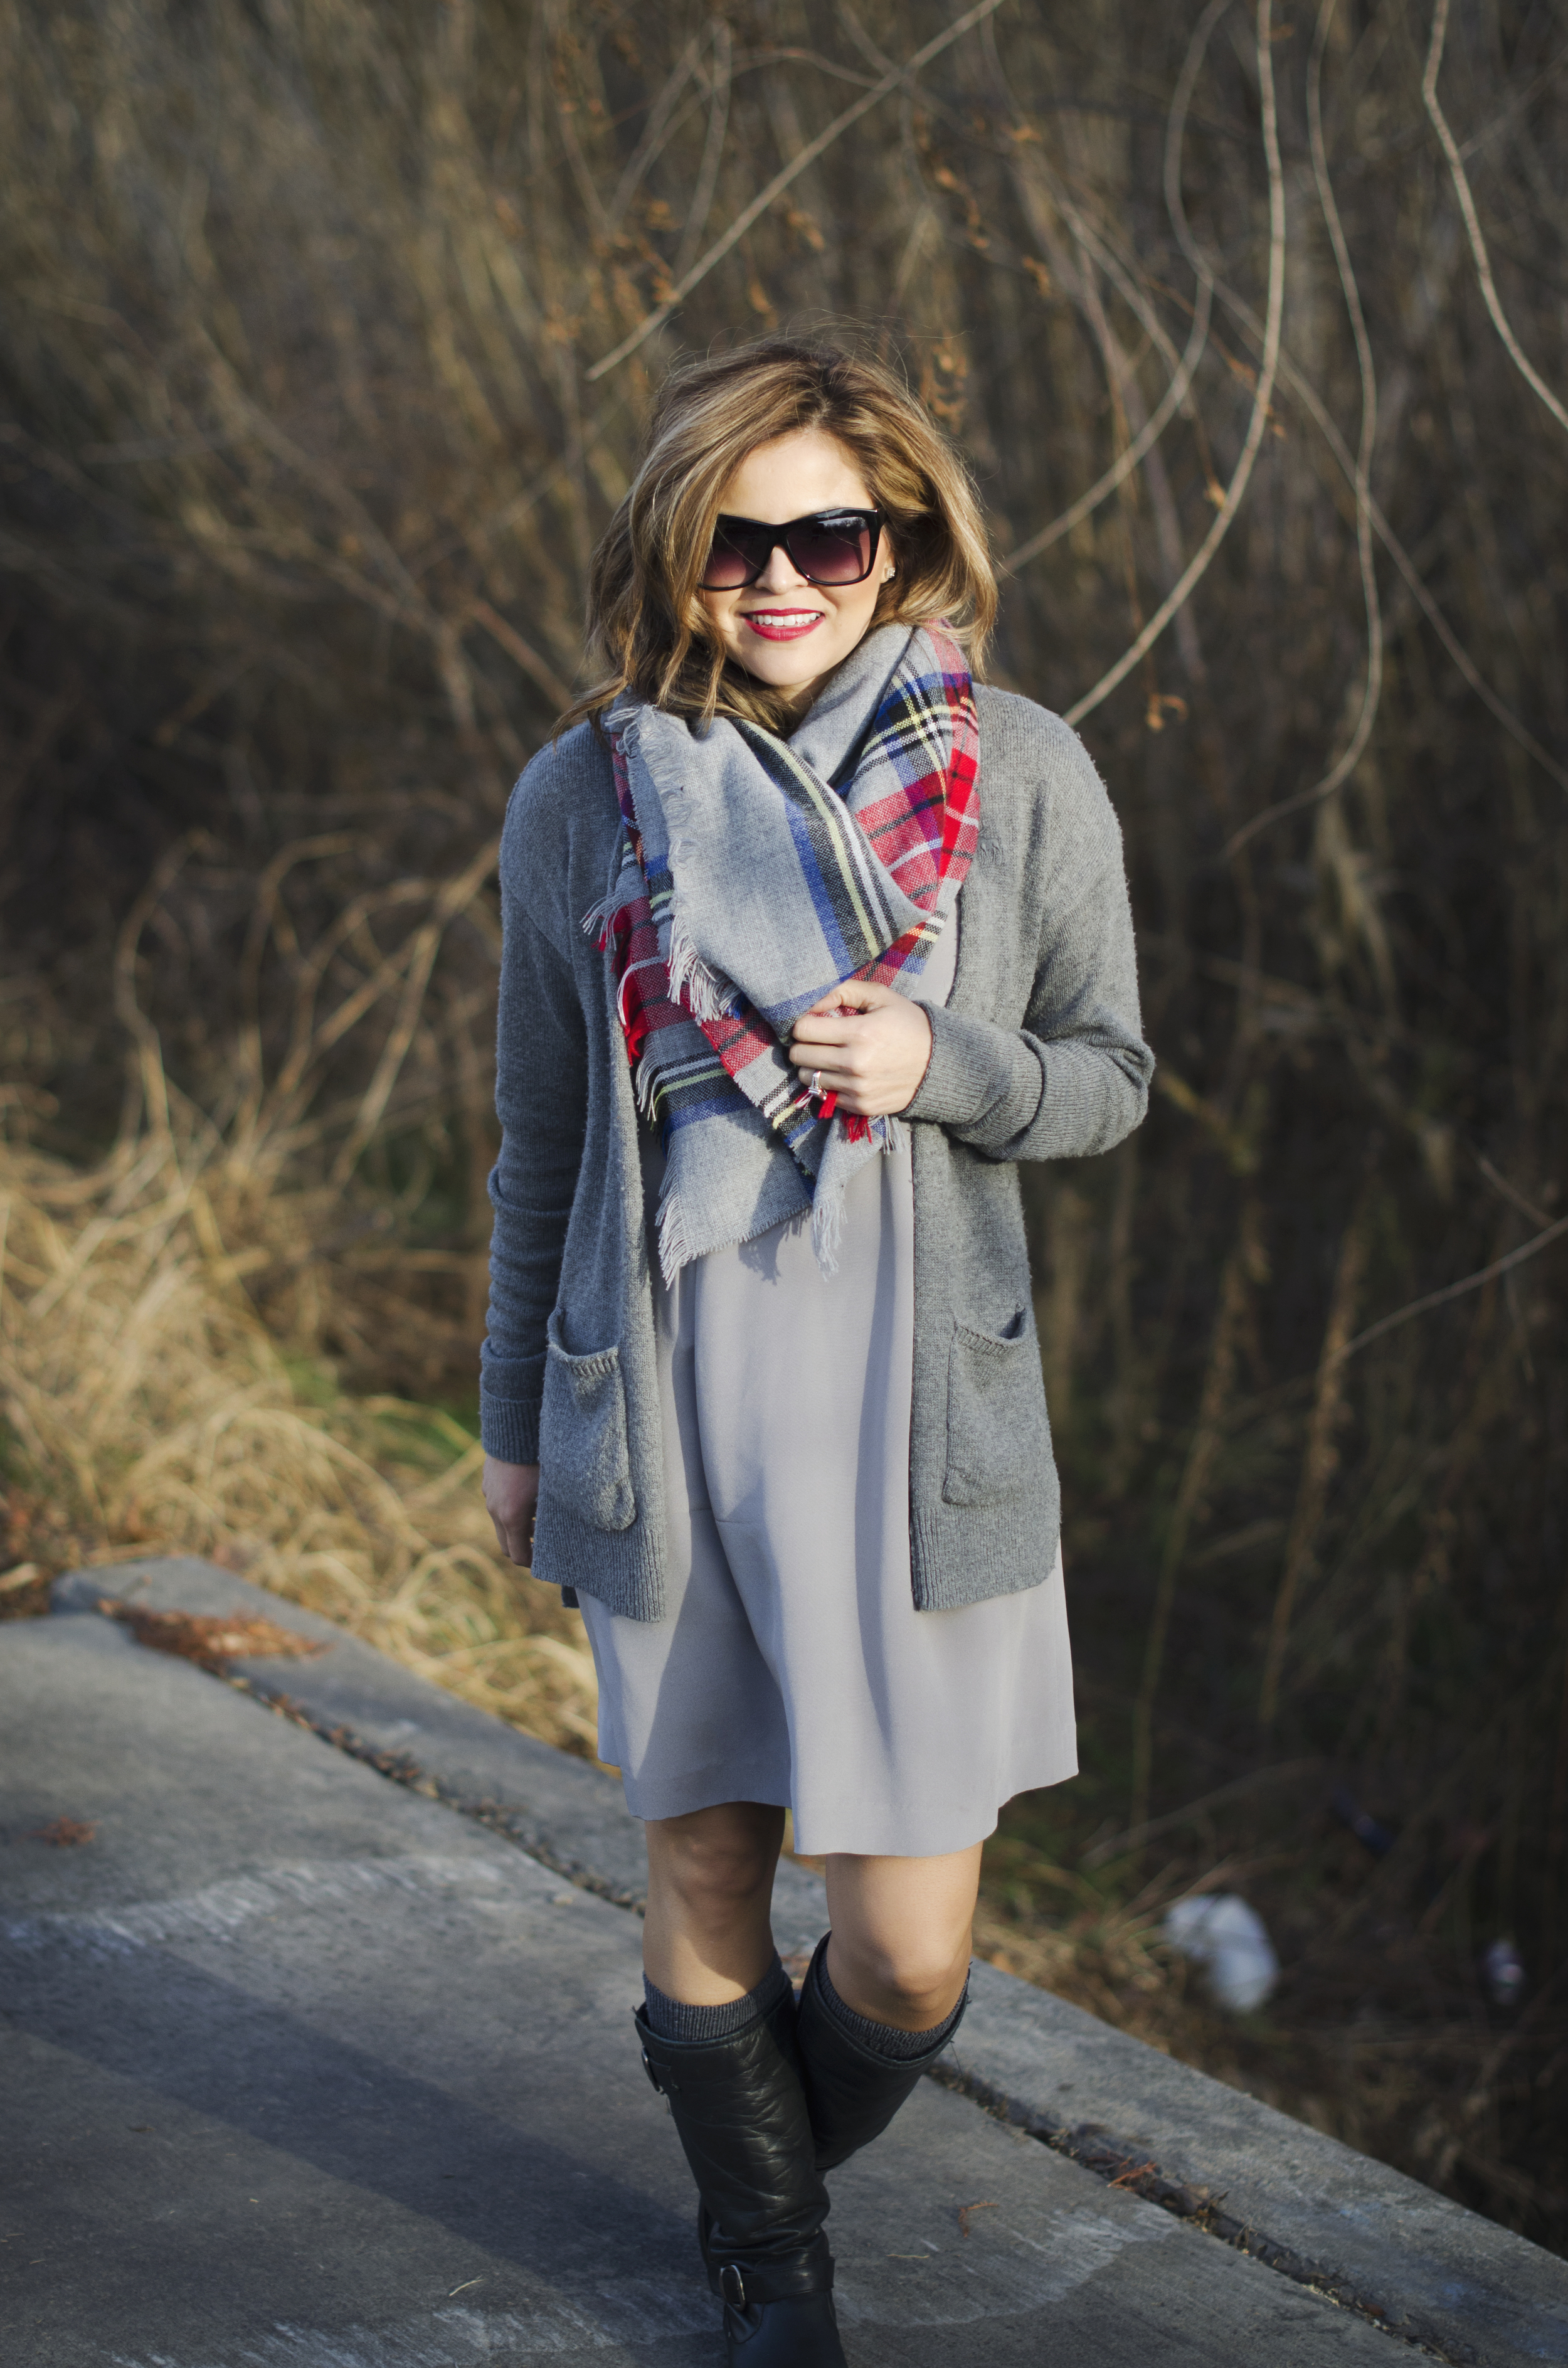 styling shades of grey